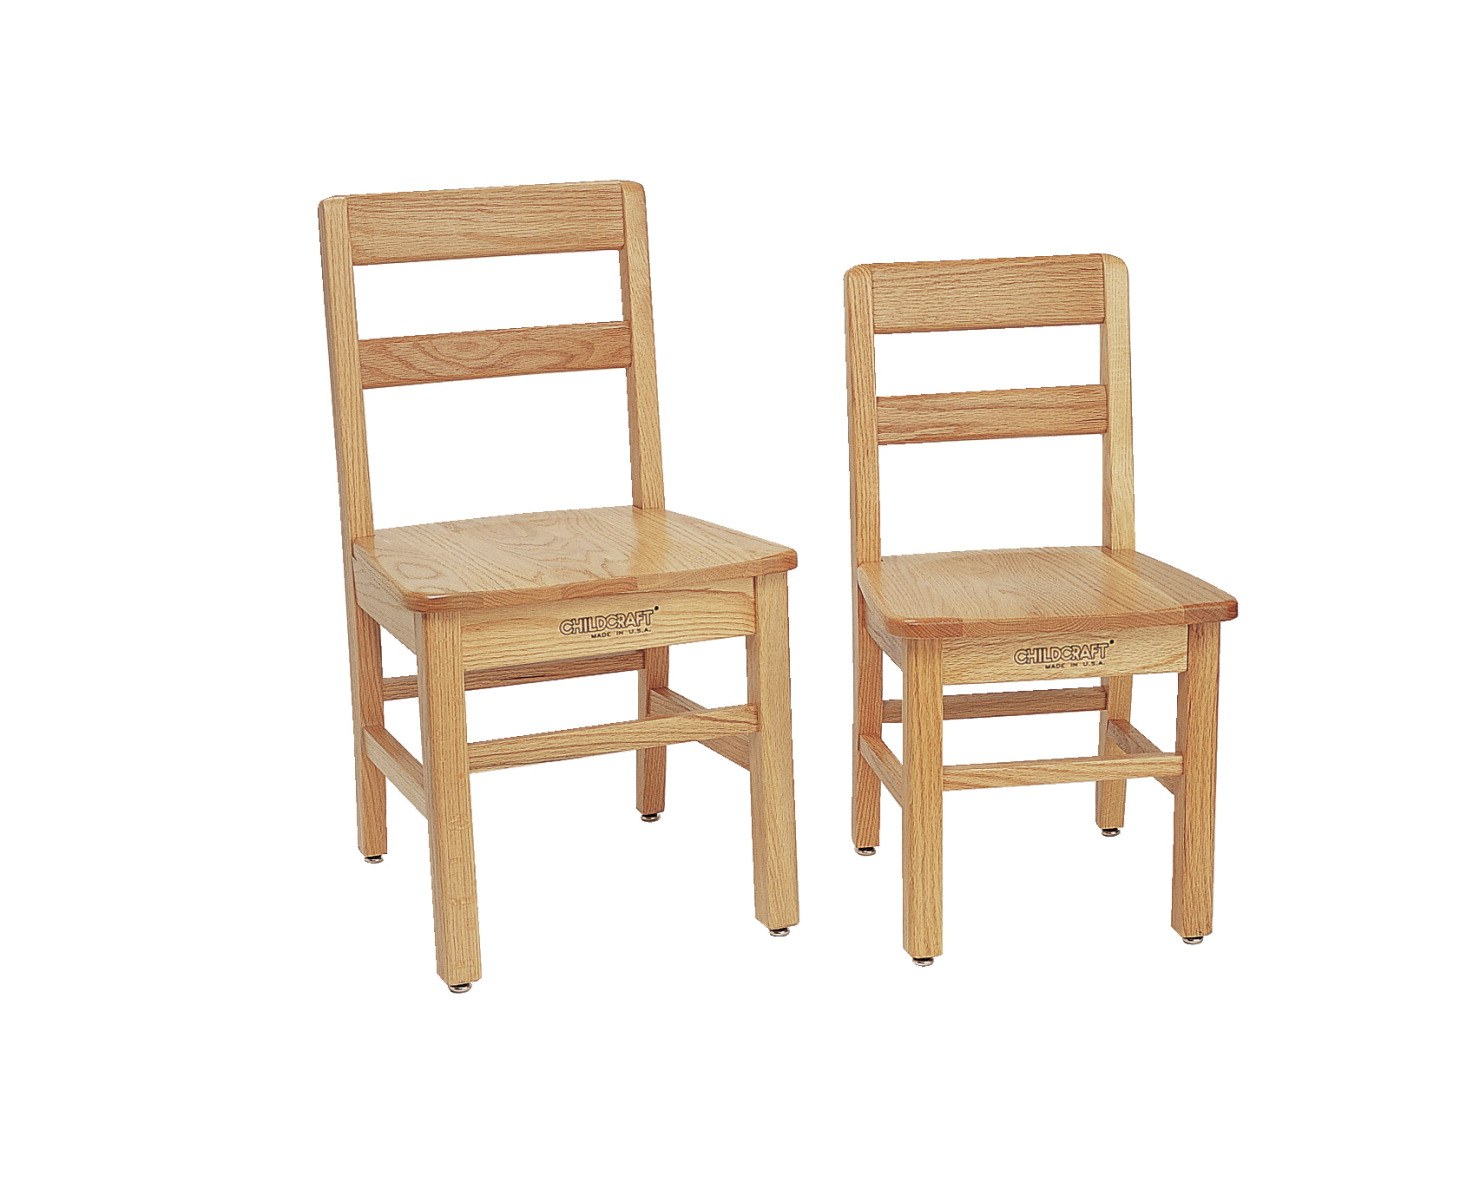 Childcraft Premium Oak Chairs, 14 in Seat Height, Set of 2